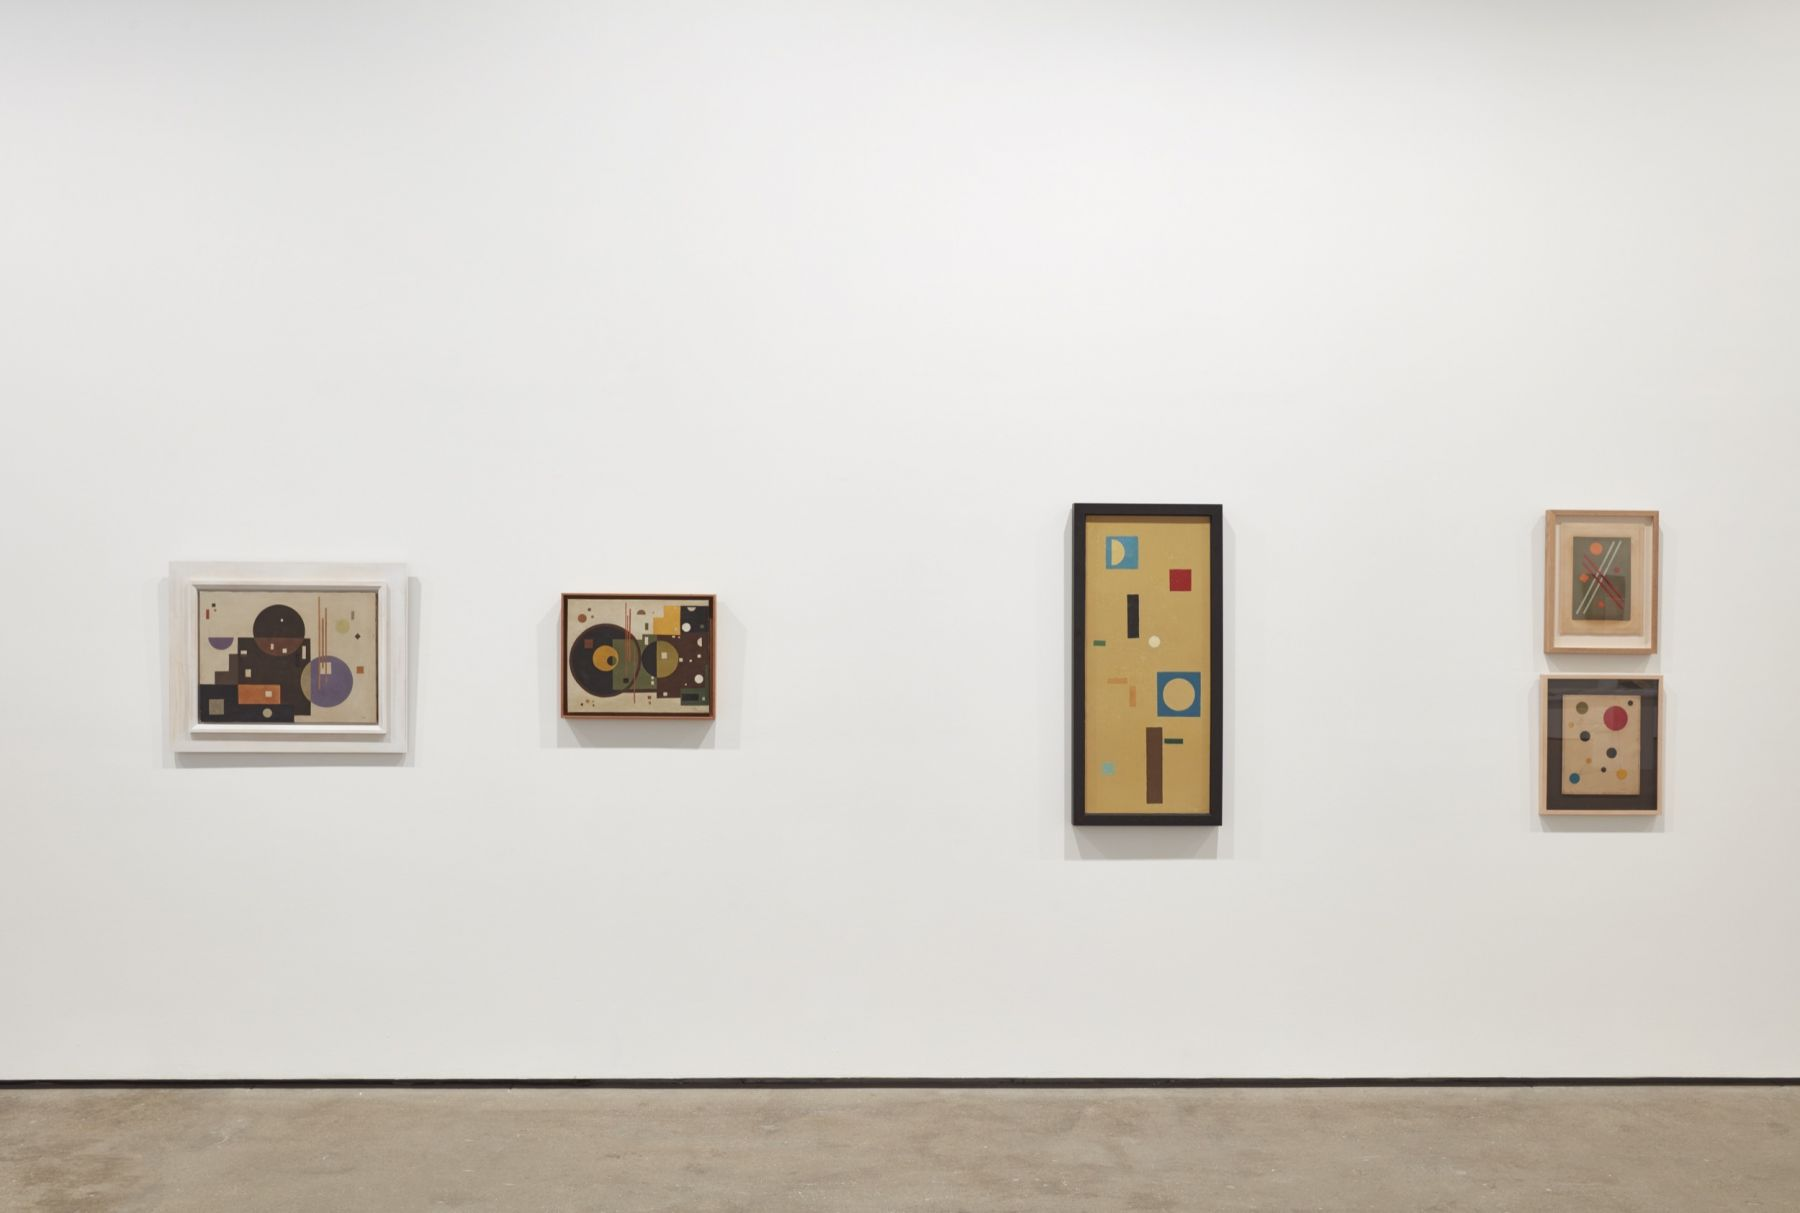 Installation view of Constructing Her Universe: Loló Soldevilla at Sean Kelly, New York